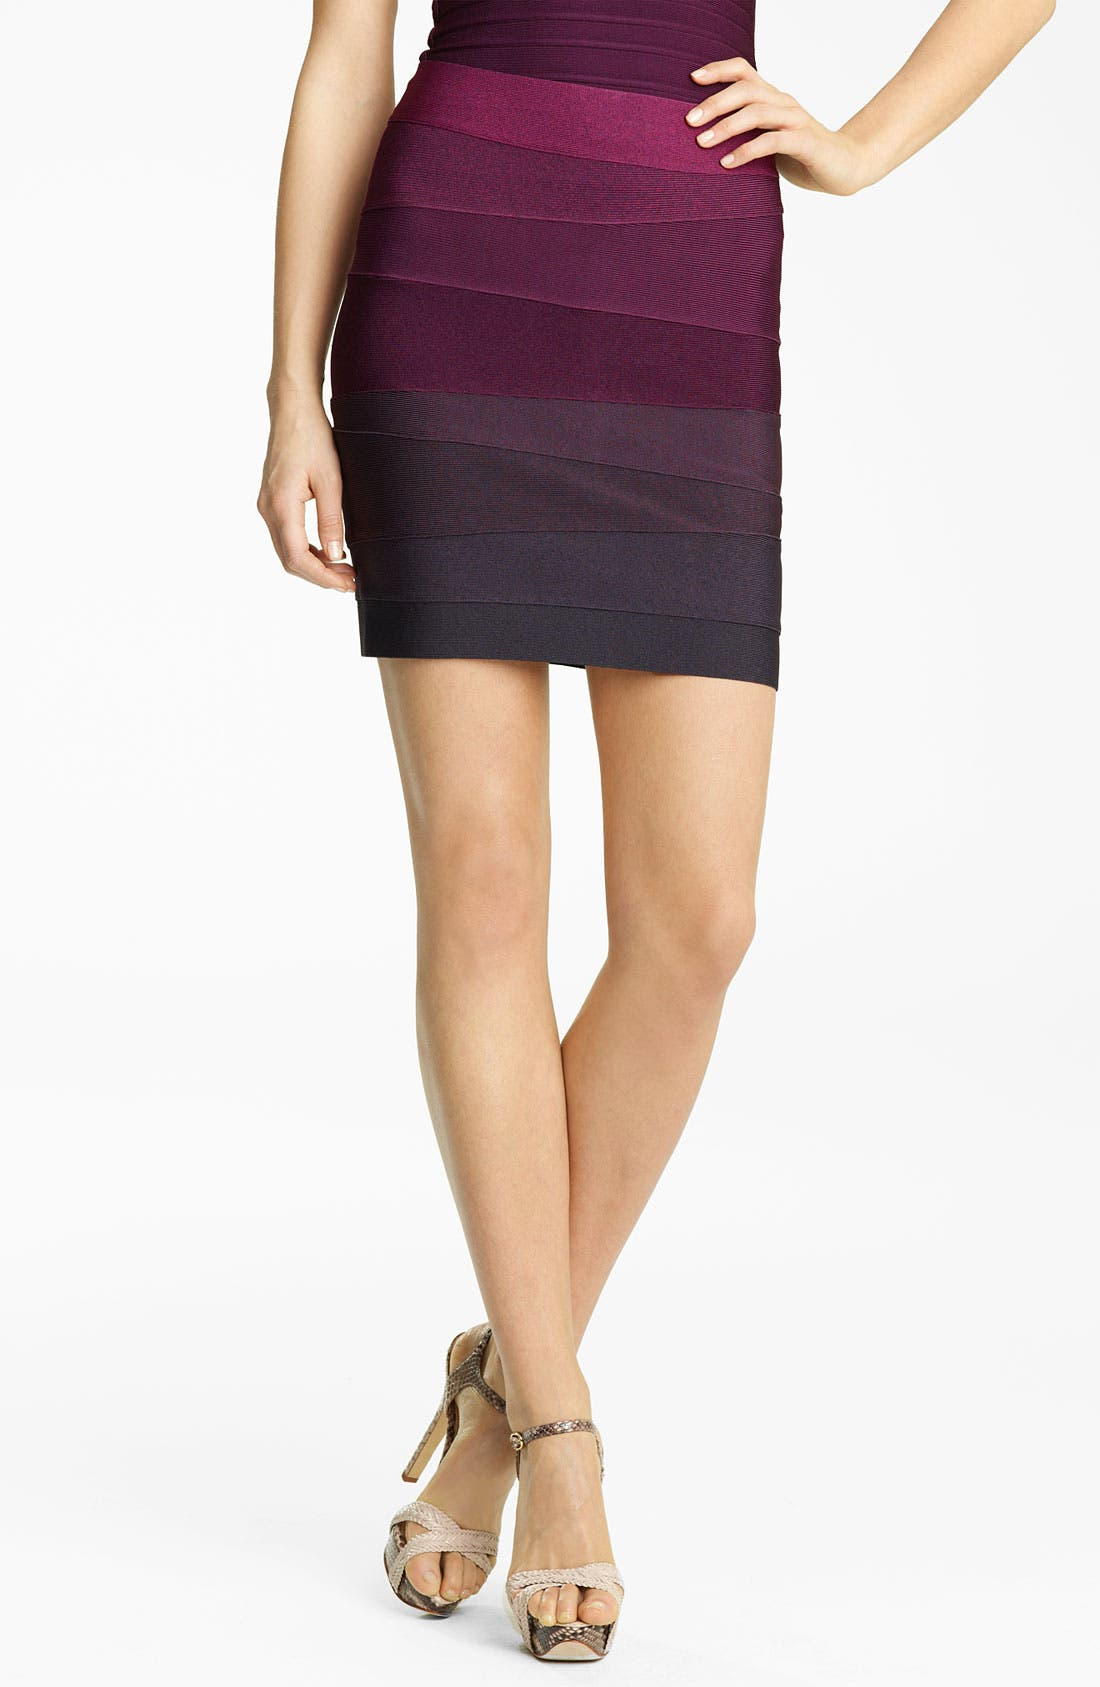 Alternate Image 1 Selected - Herve Leger Ombré Bandage Miniskirt